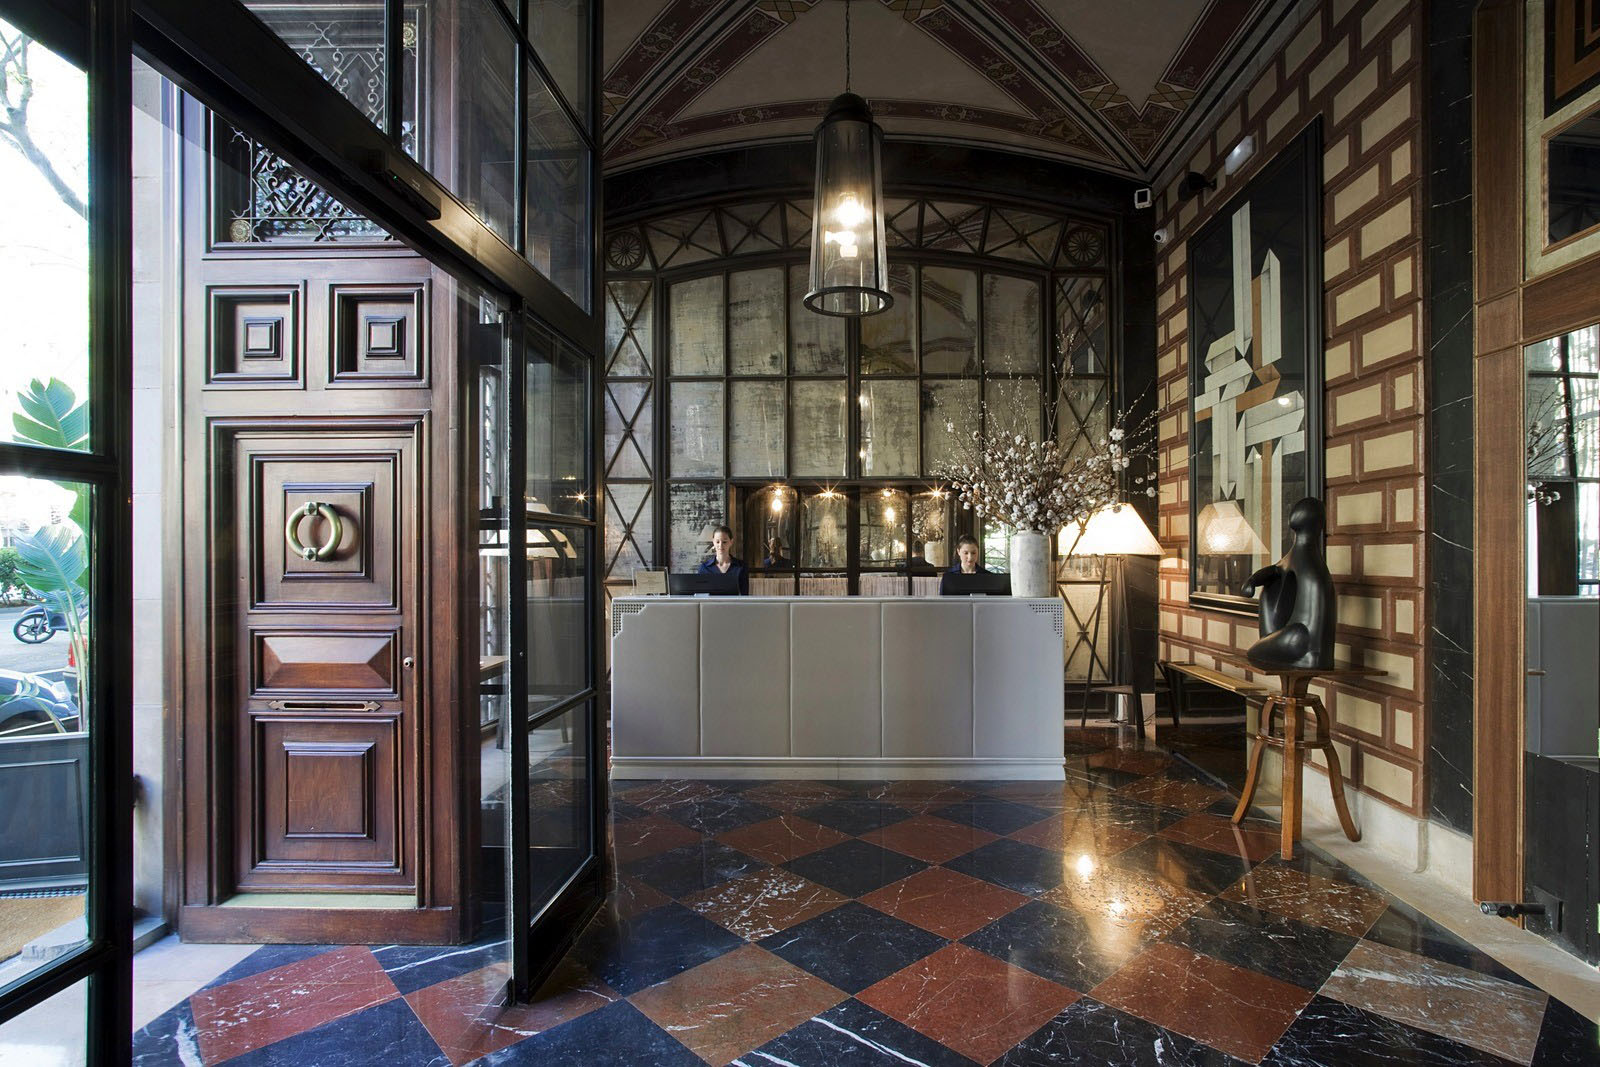 Cotton house hotel barcelona mixes neoclassical elements - Contemporary style interior design ...